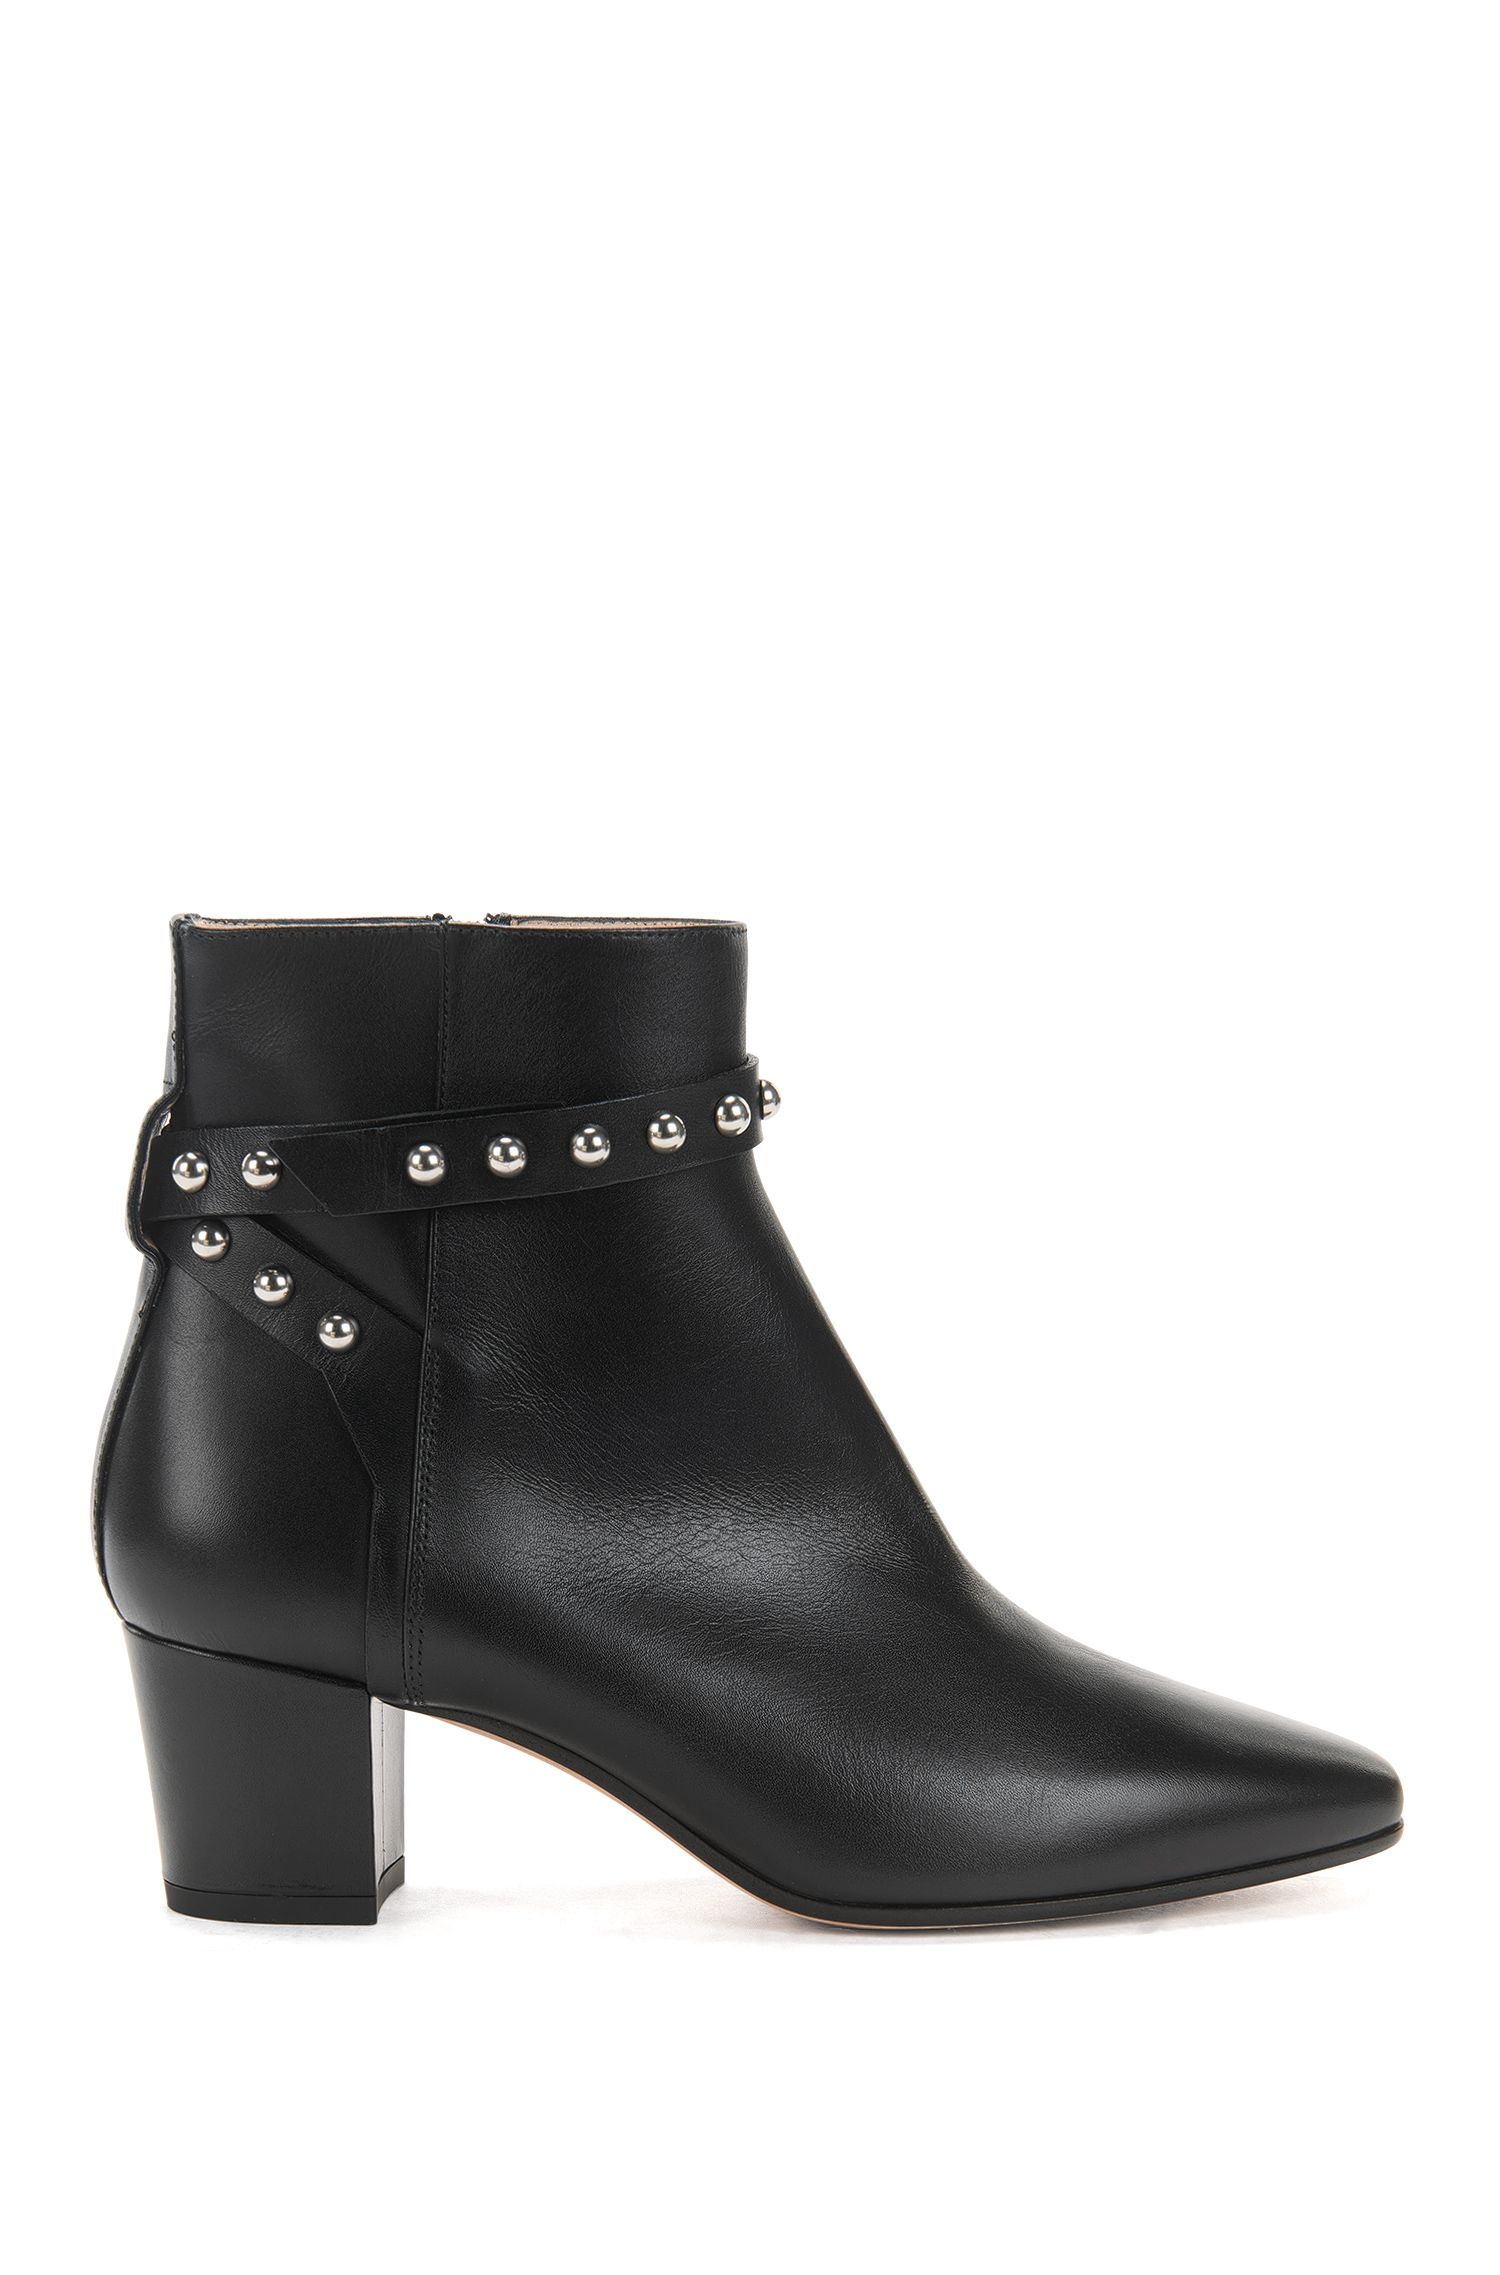 Leather ankle boots with studded strap